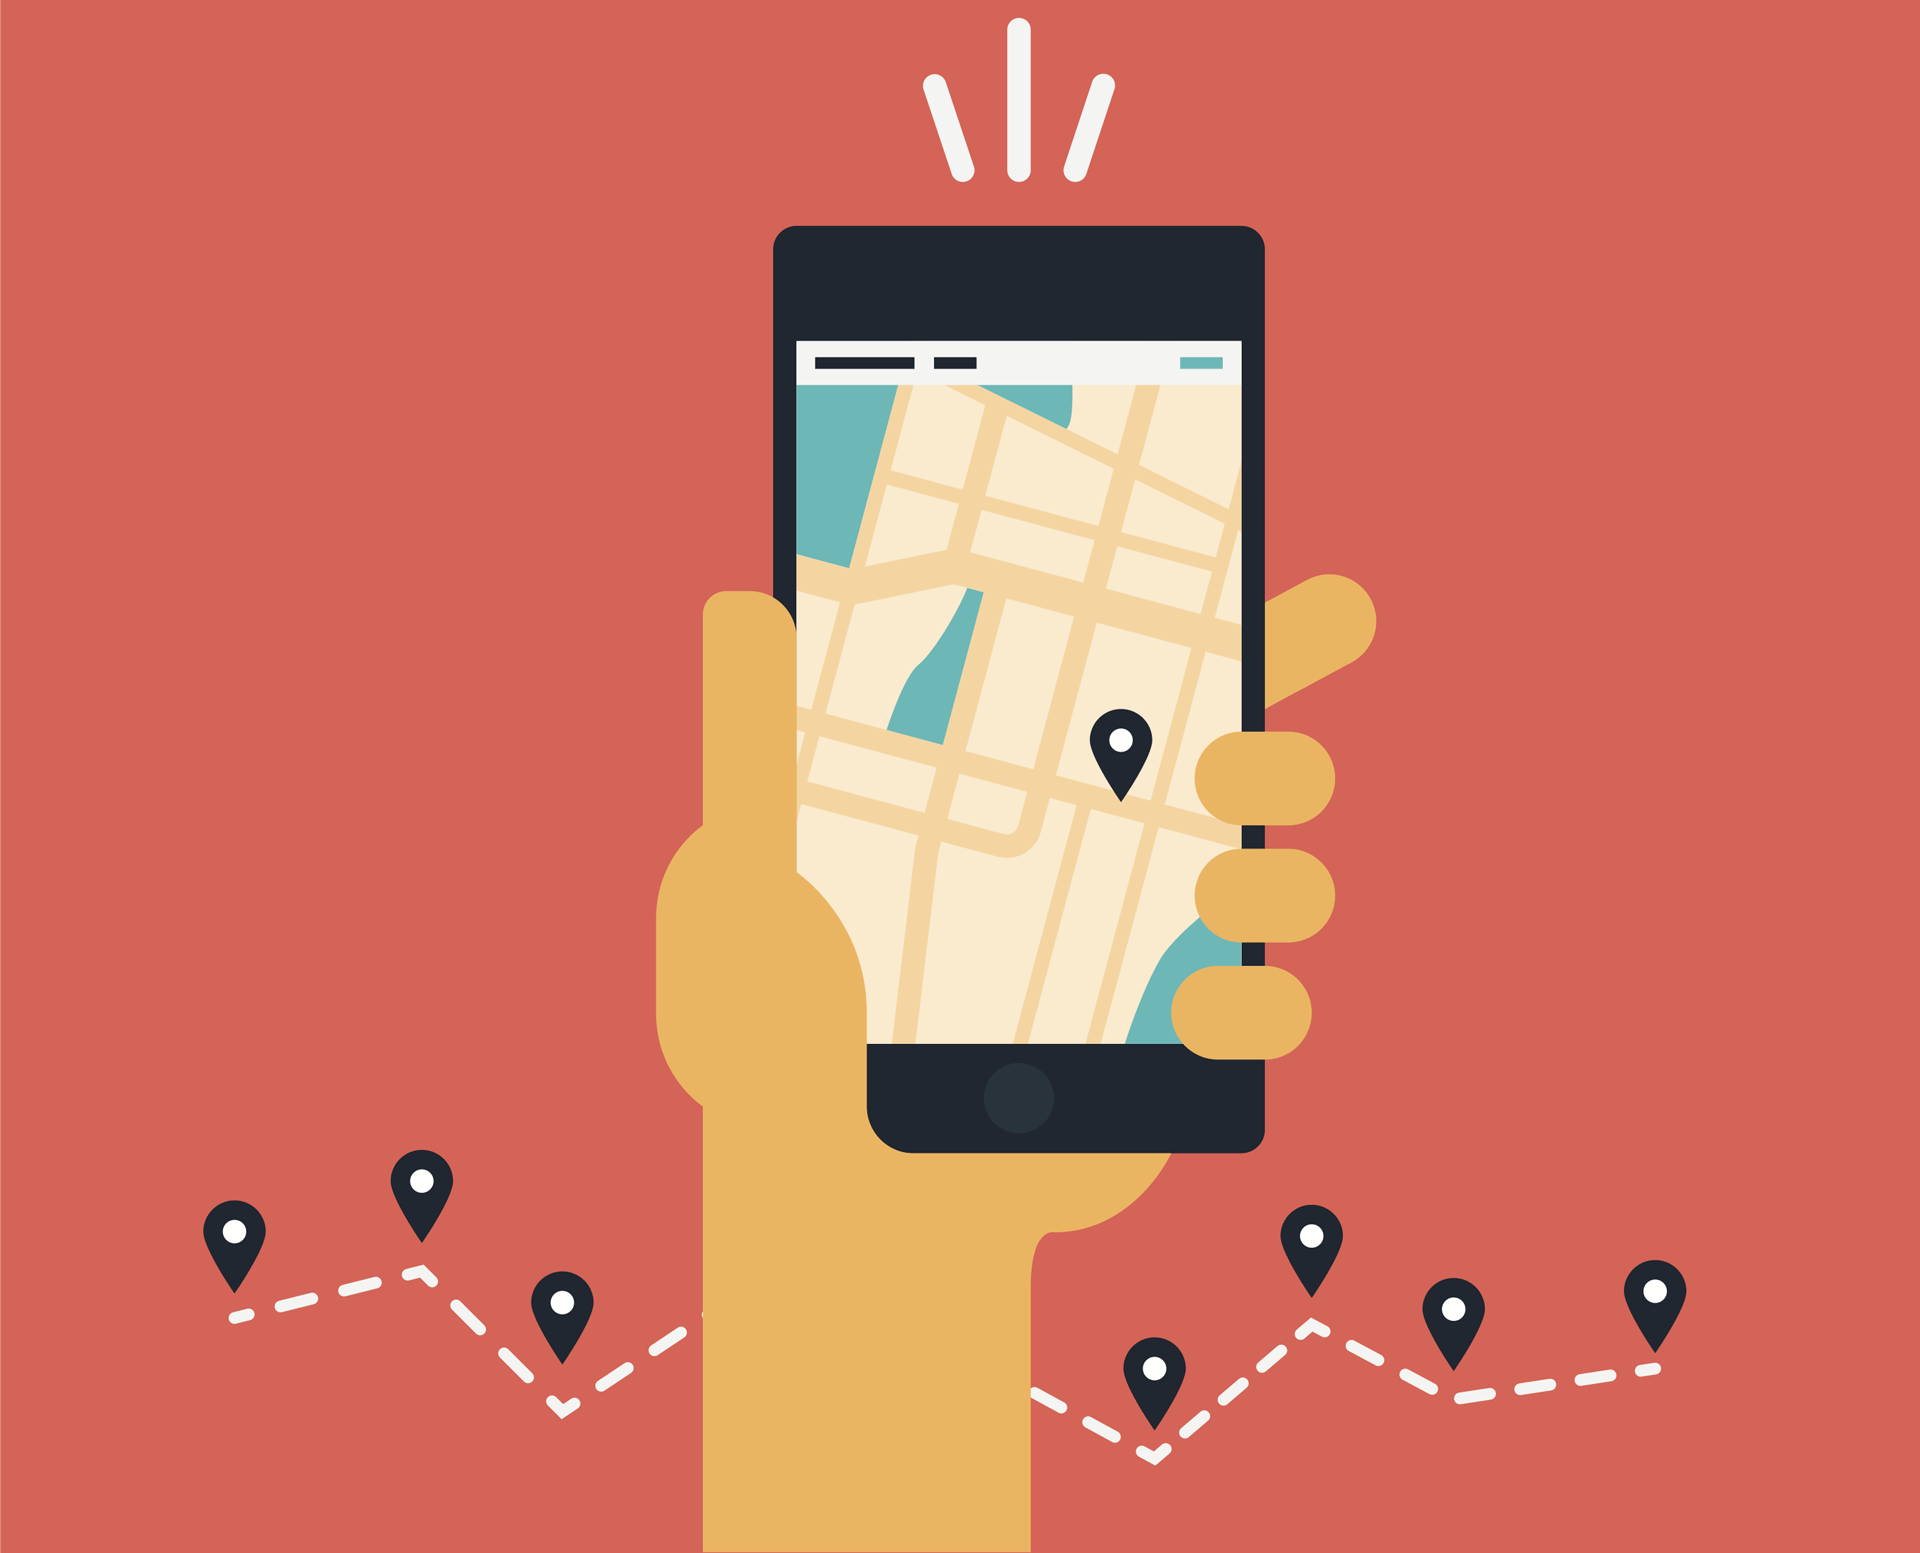 Way 1: Track the Location of A Smart Phone for Free Using GPS Cell Phone Locator